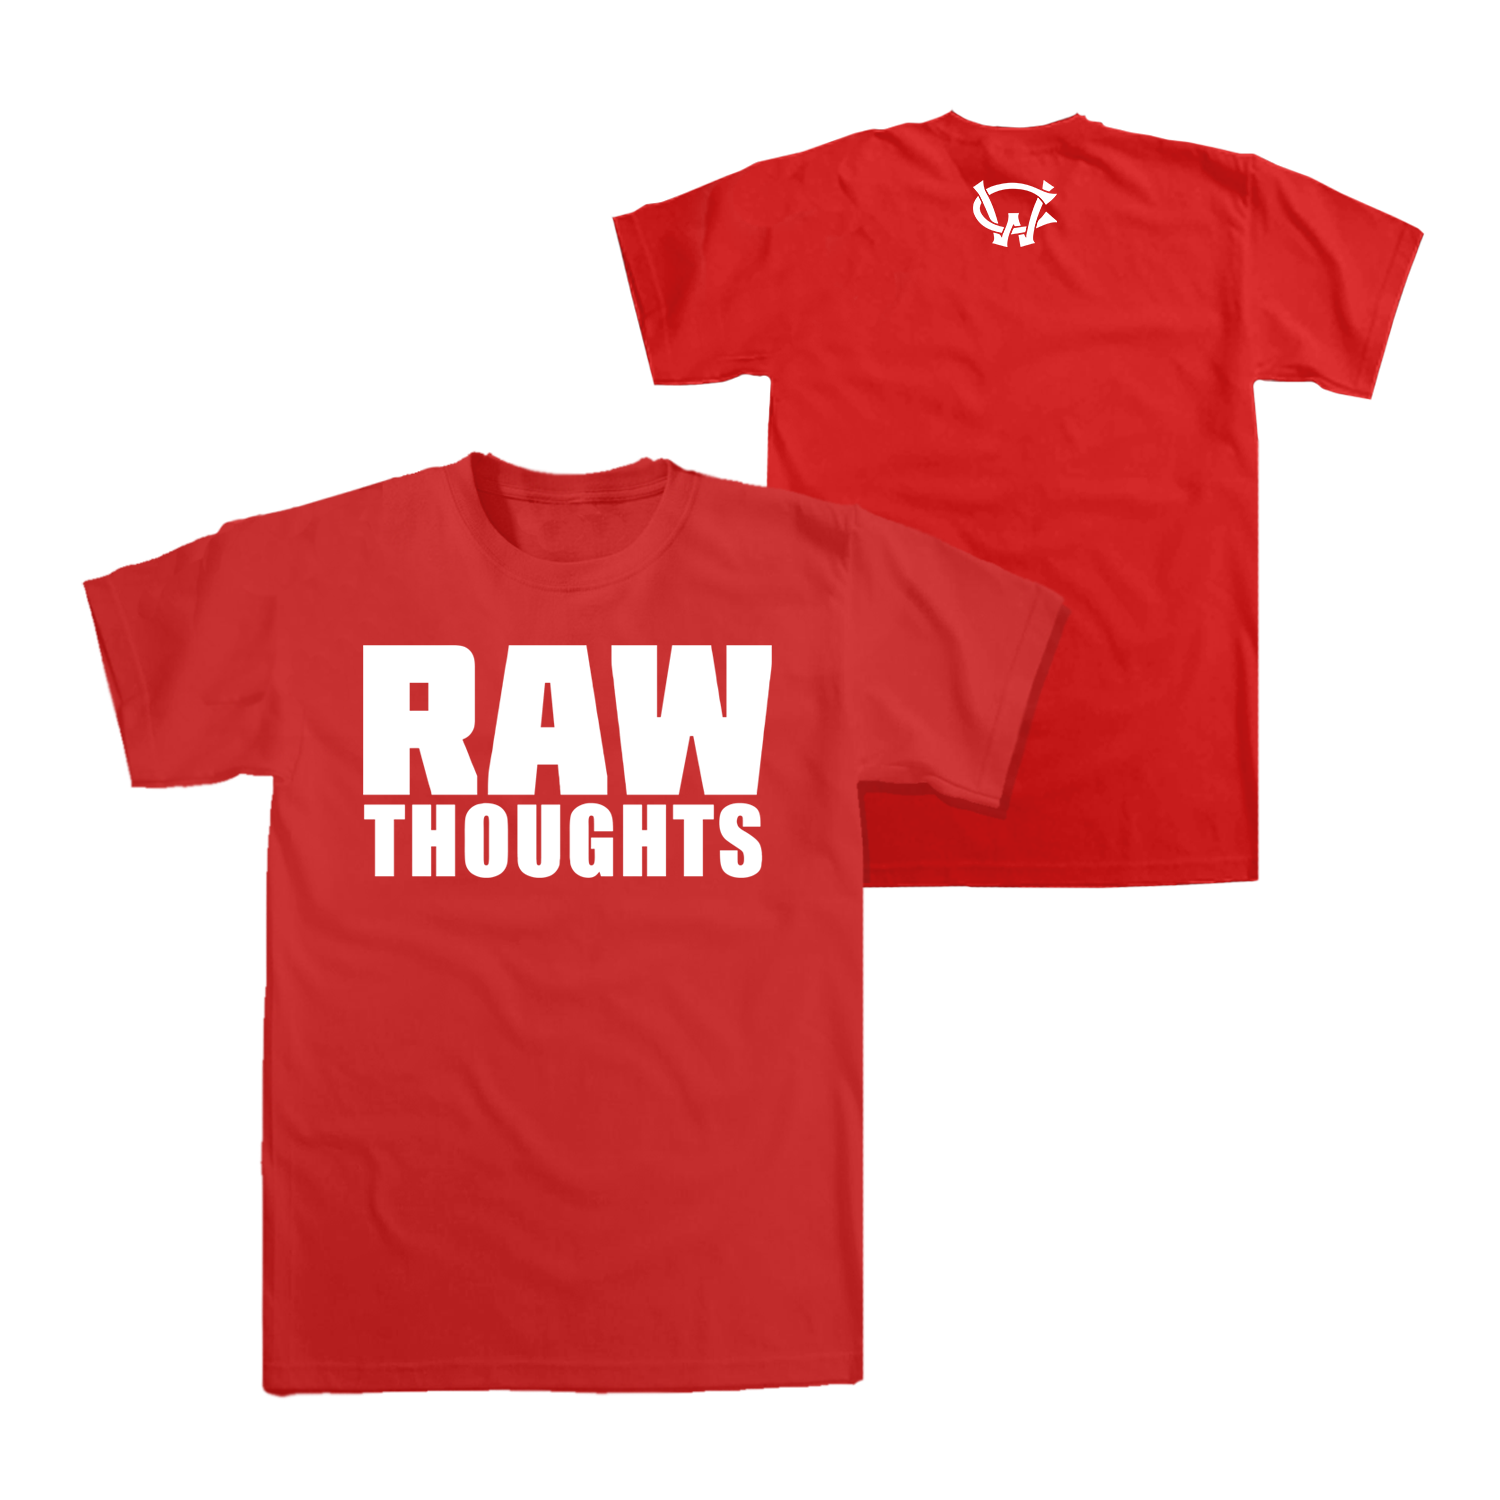 Raw Thoughts T-shirt